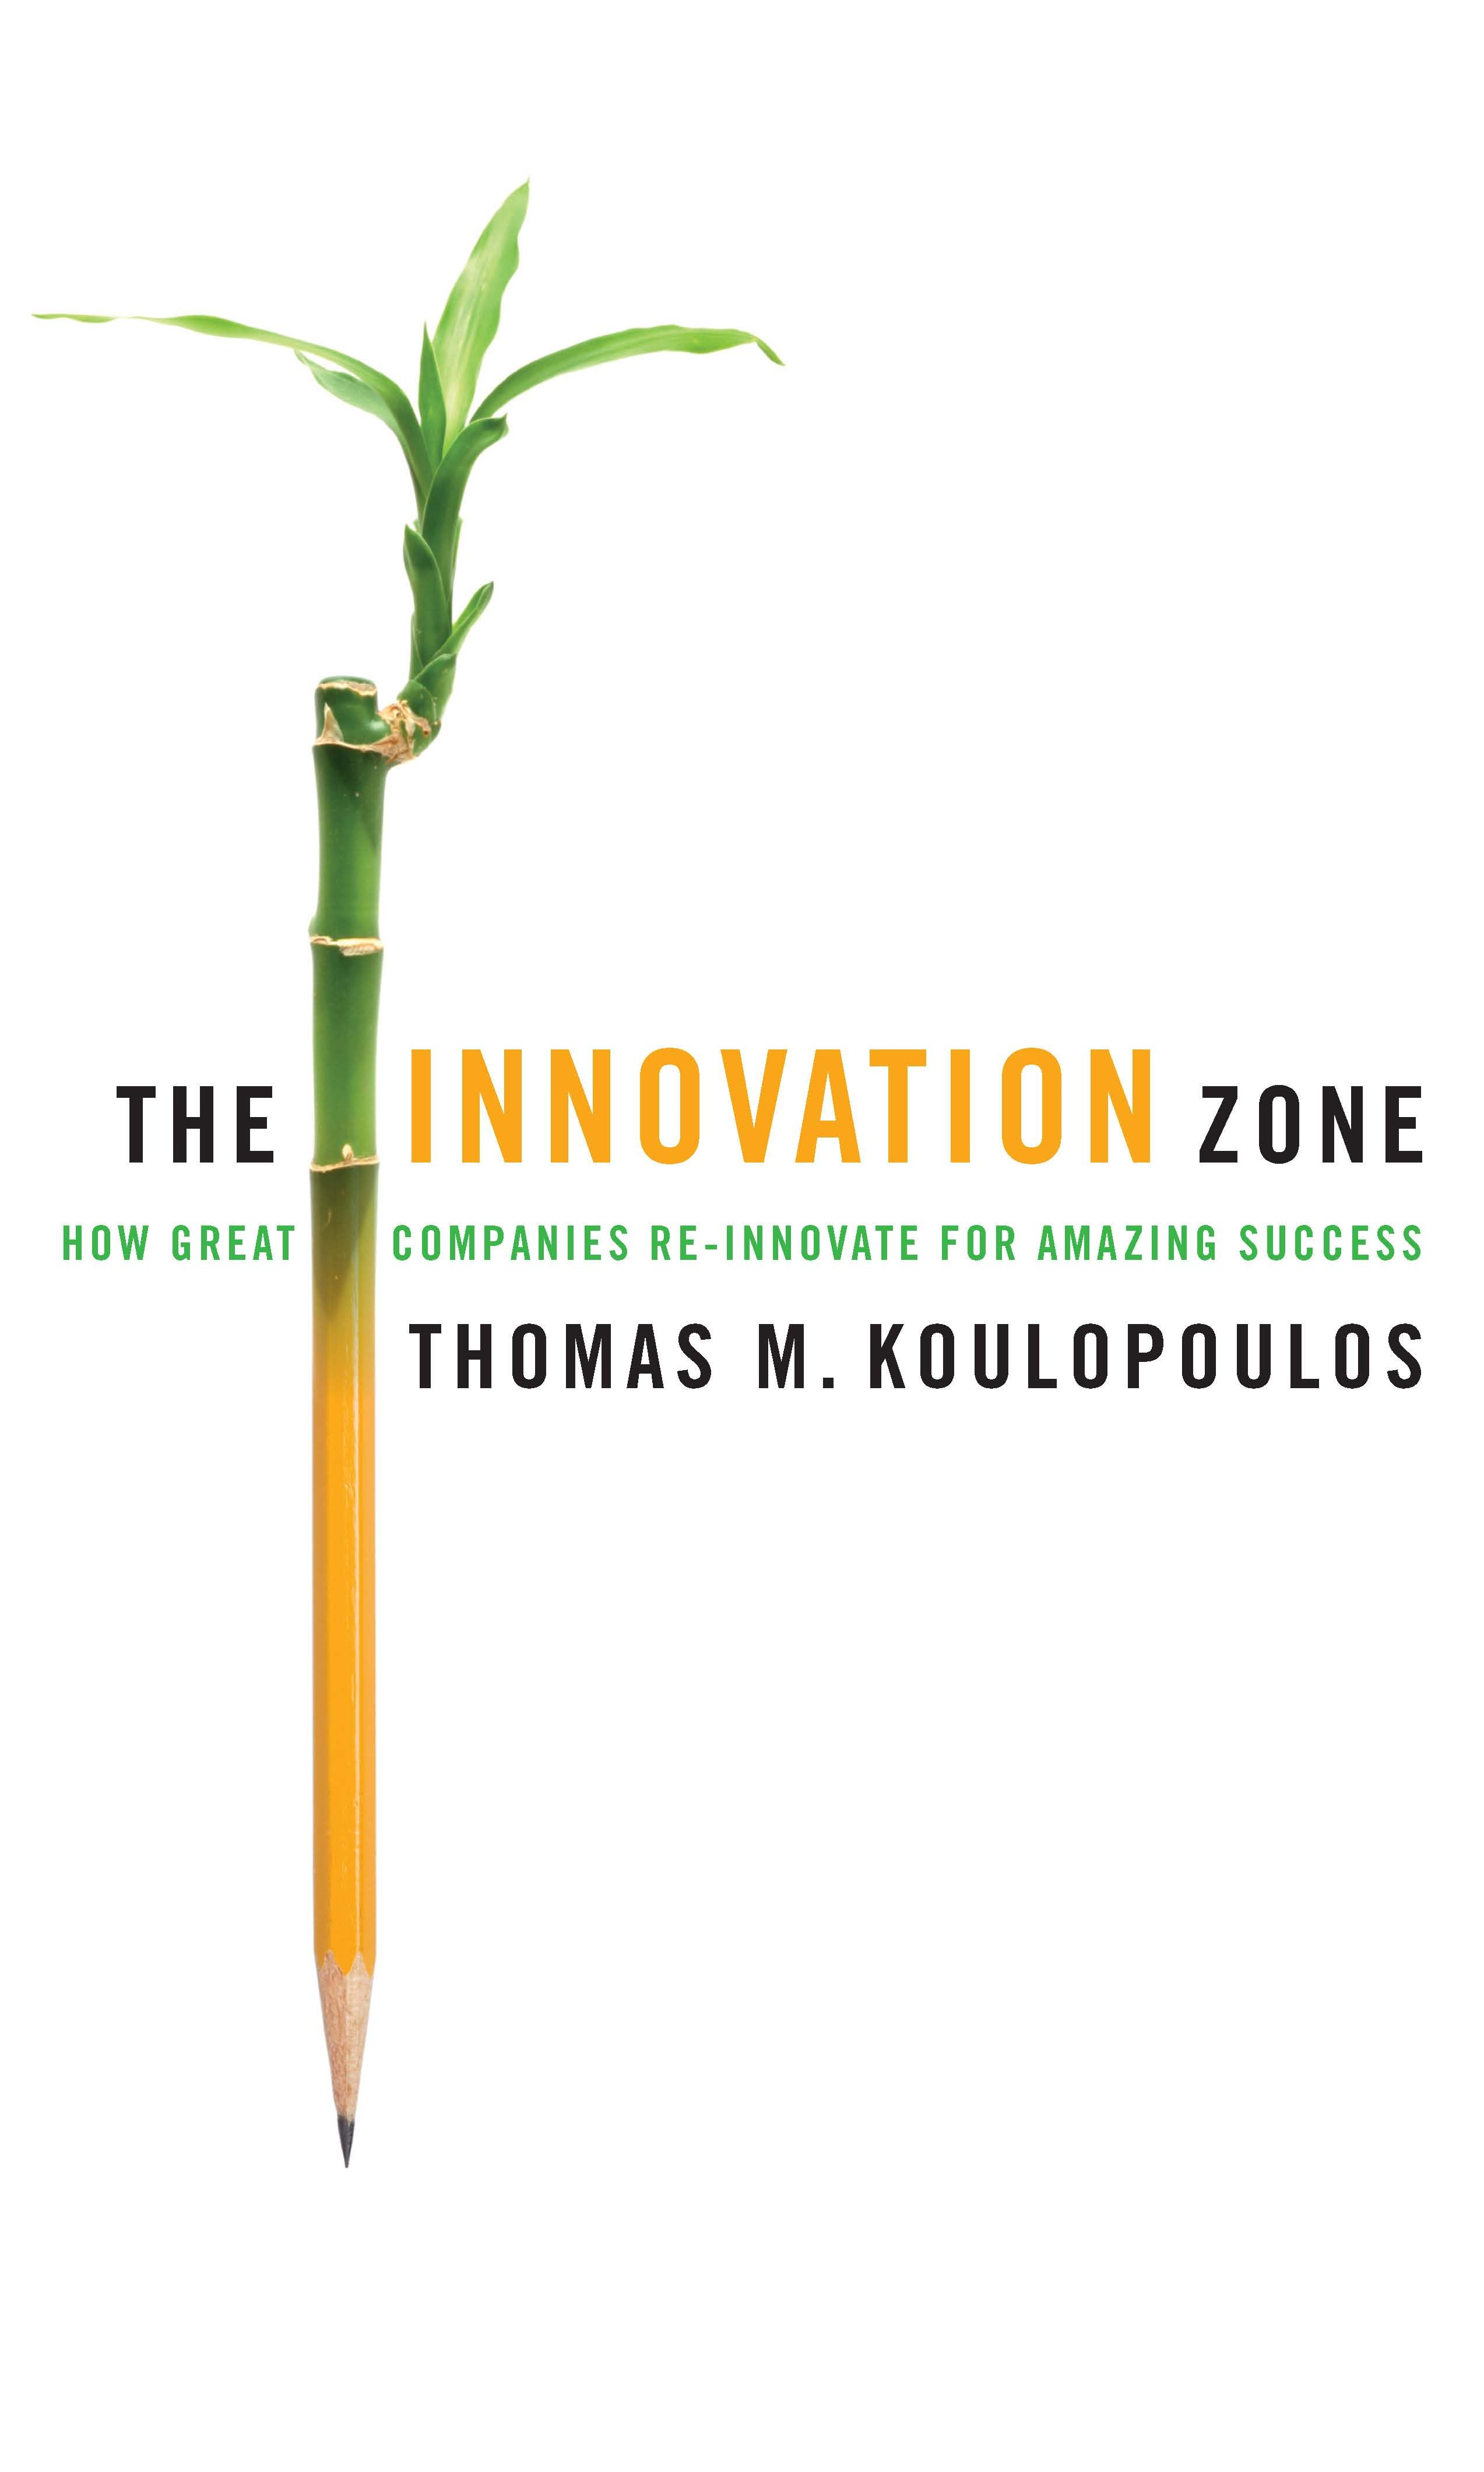 Innovation Zone, The: How Great Companies Re-Innovate for Amazing Success By: Thomas M. Koulopoulos